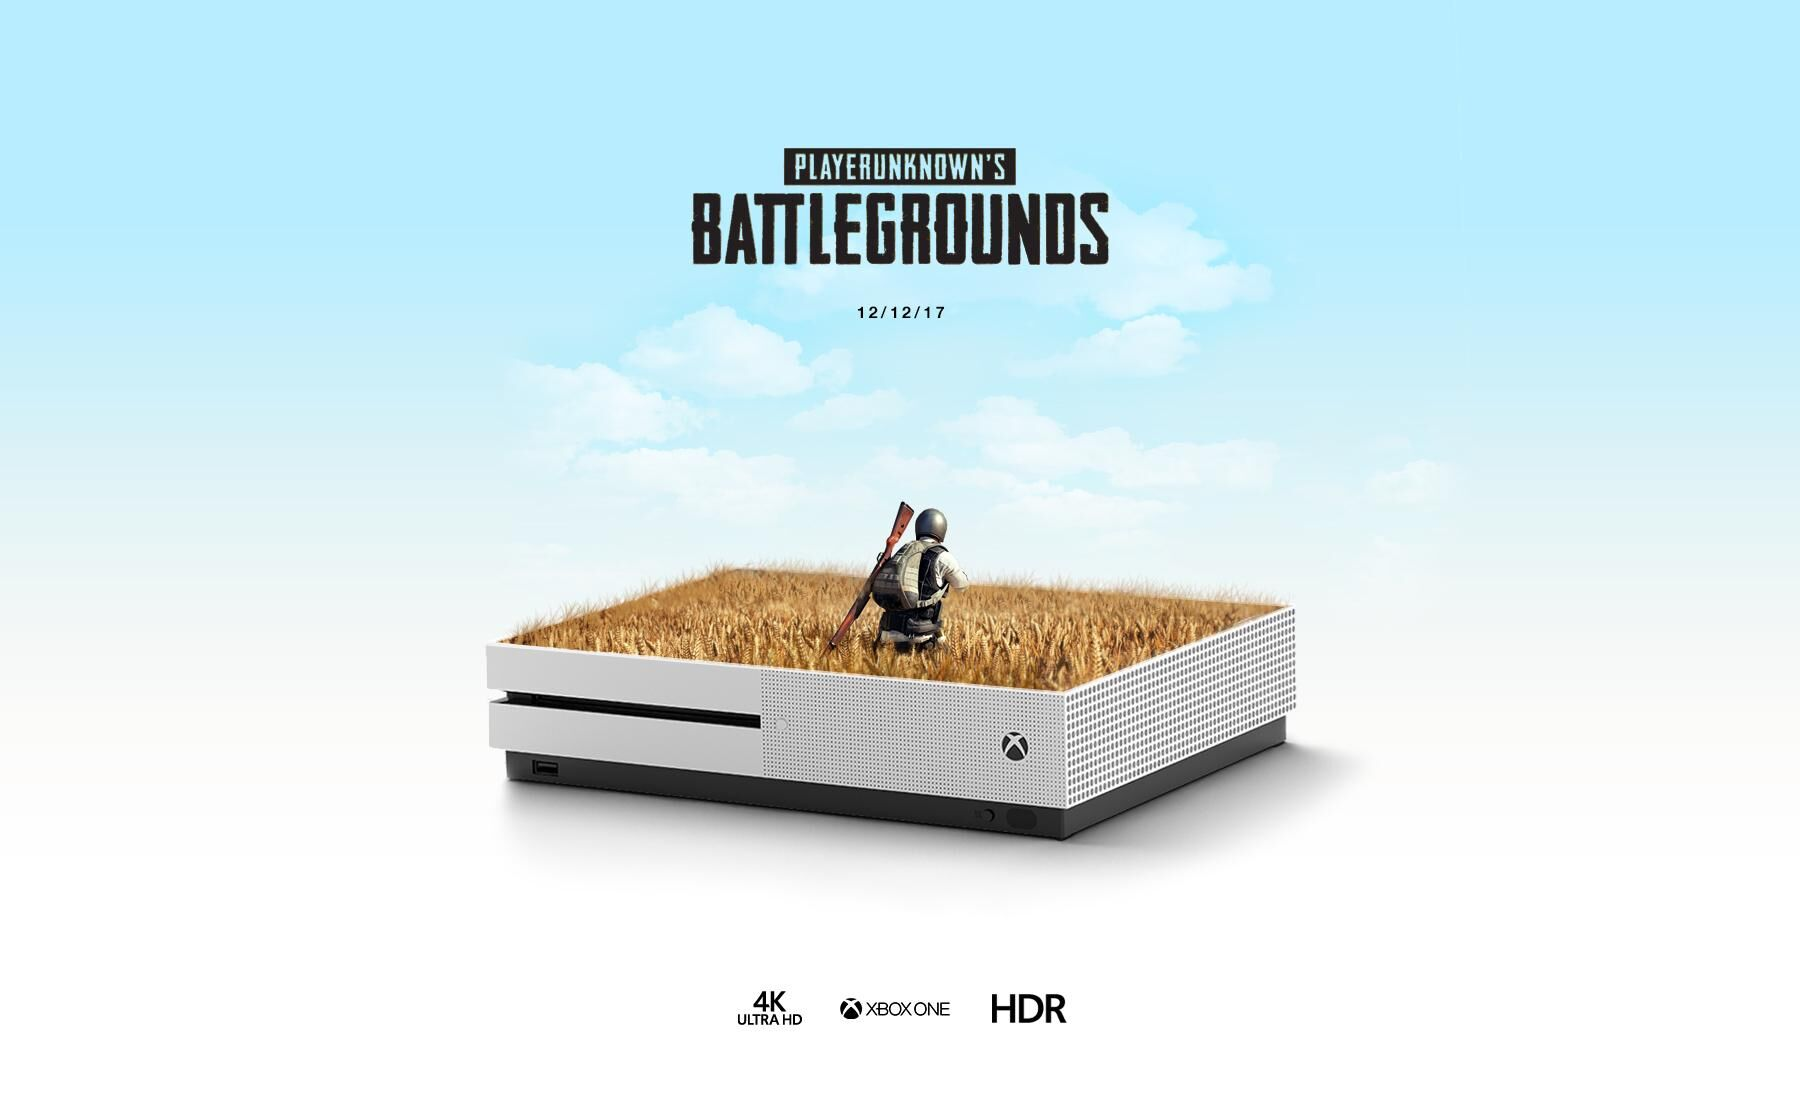 PUBG Xbox One advertising art pulled after allegedly stolen